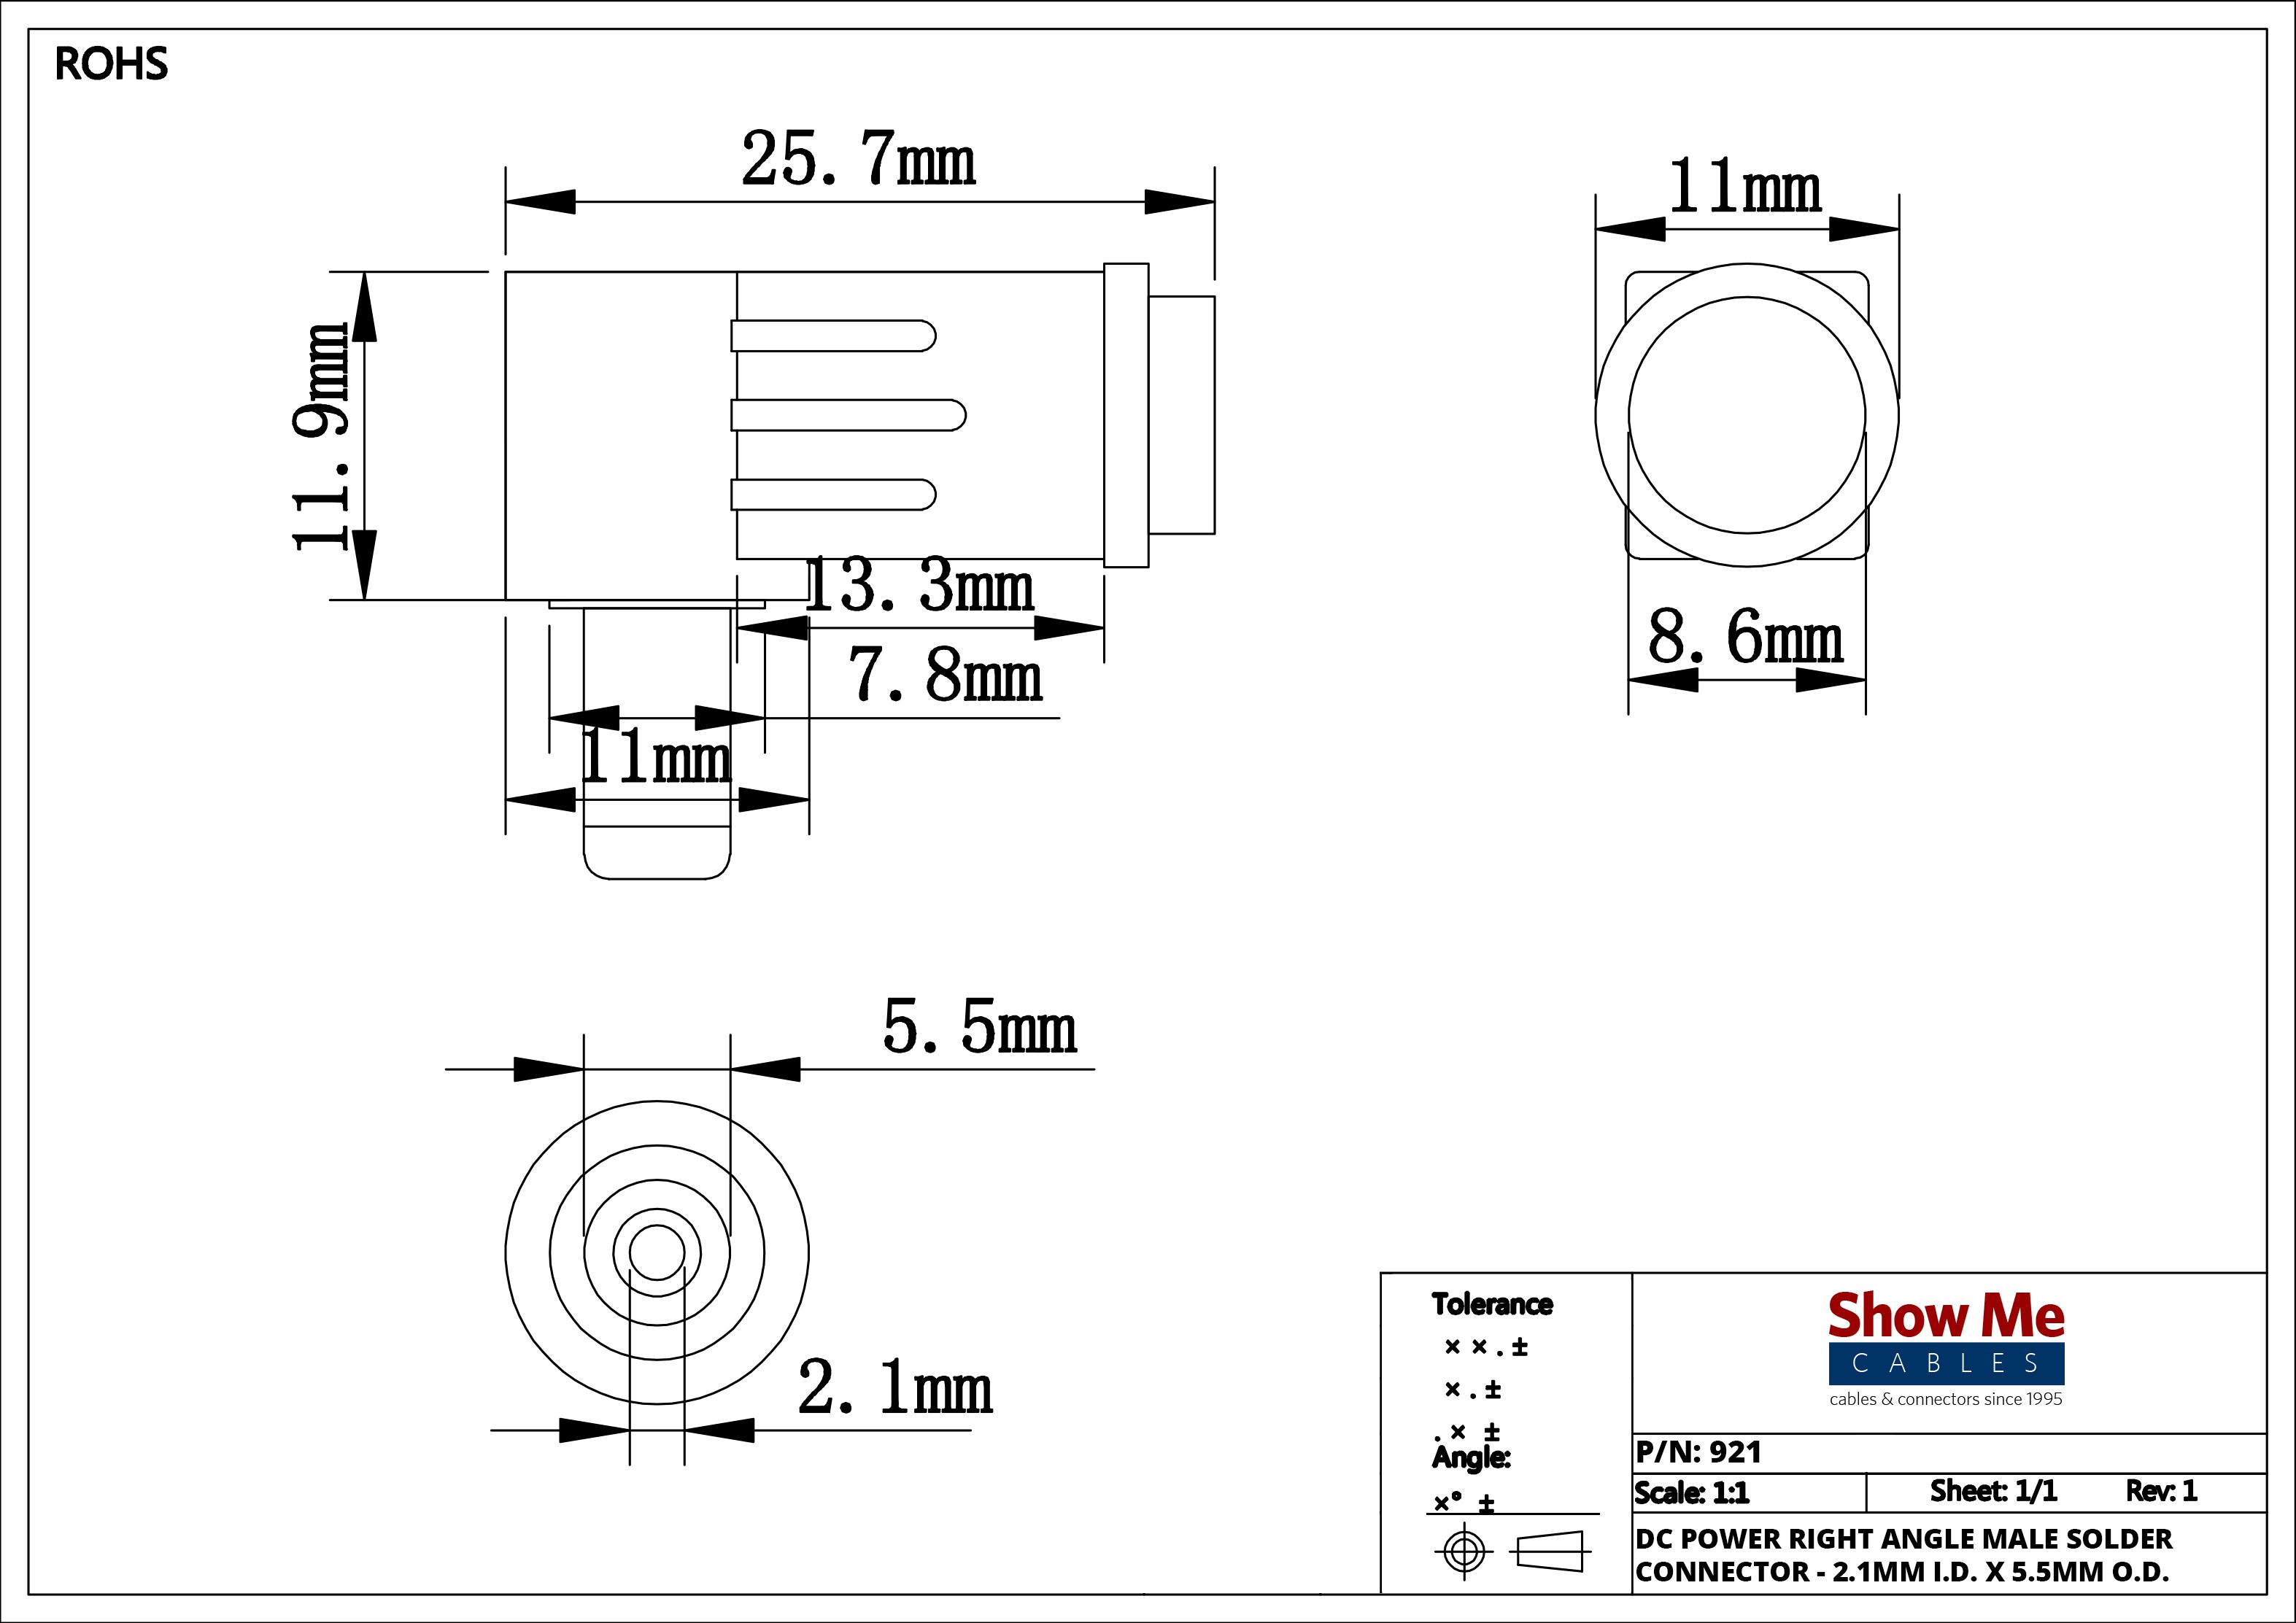 mitsubishi mini split wiring diagram Download-home speaker wiring diagram  Collection 3 5 Mm Stereo. DOWNLOAD. Wiring Diagram ...